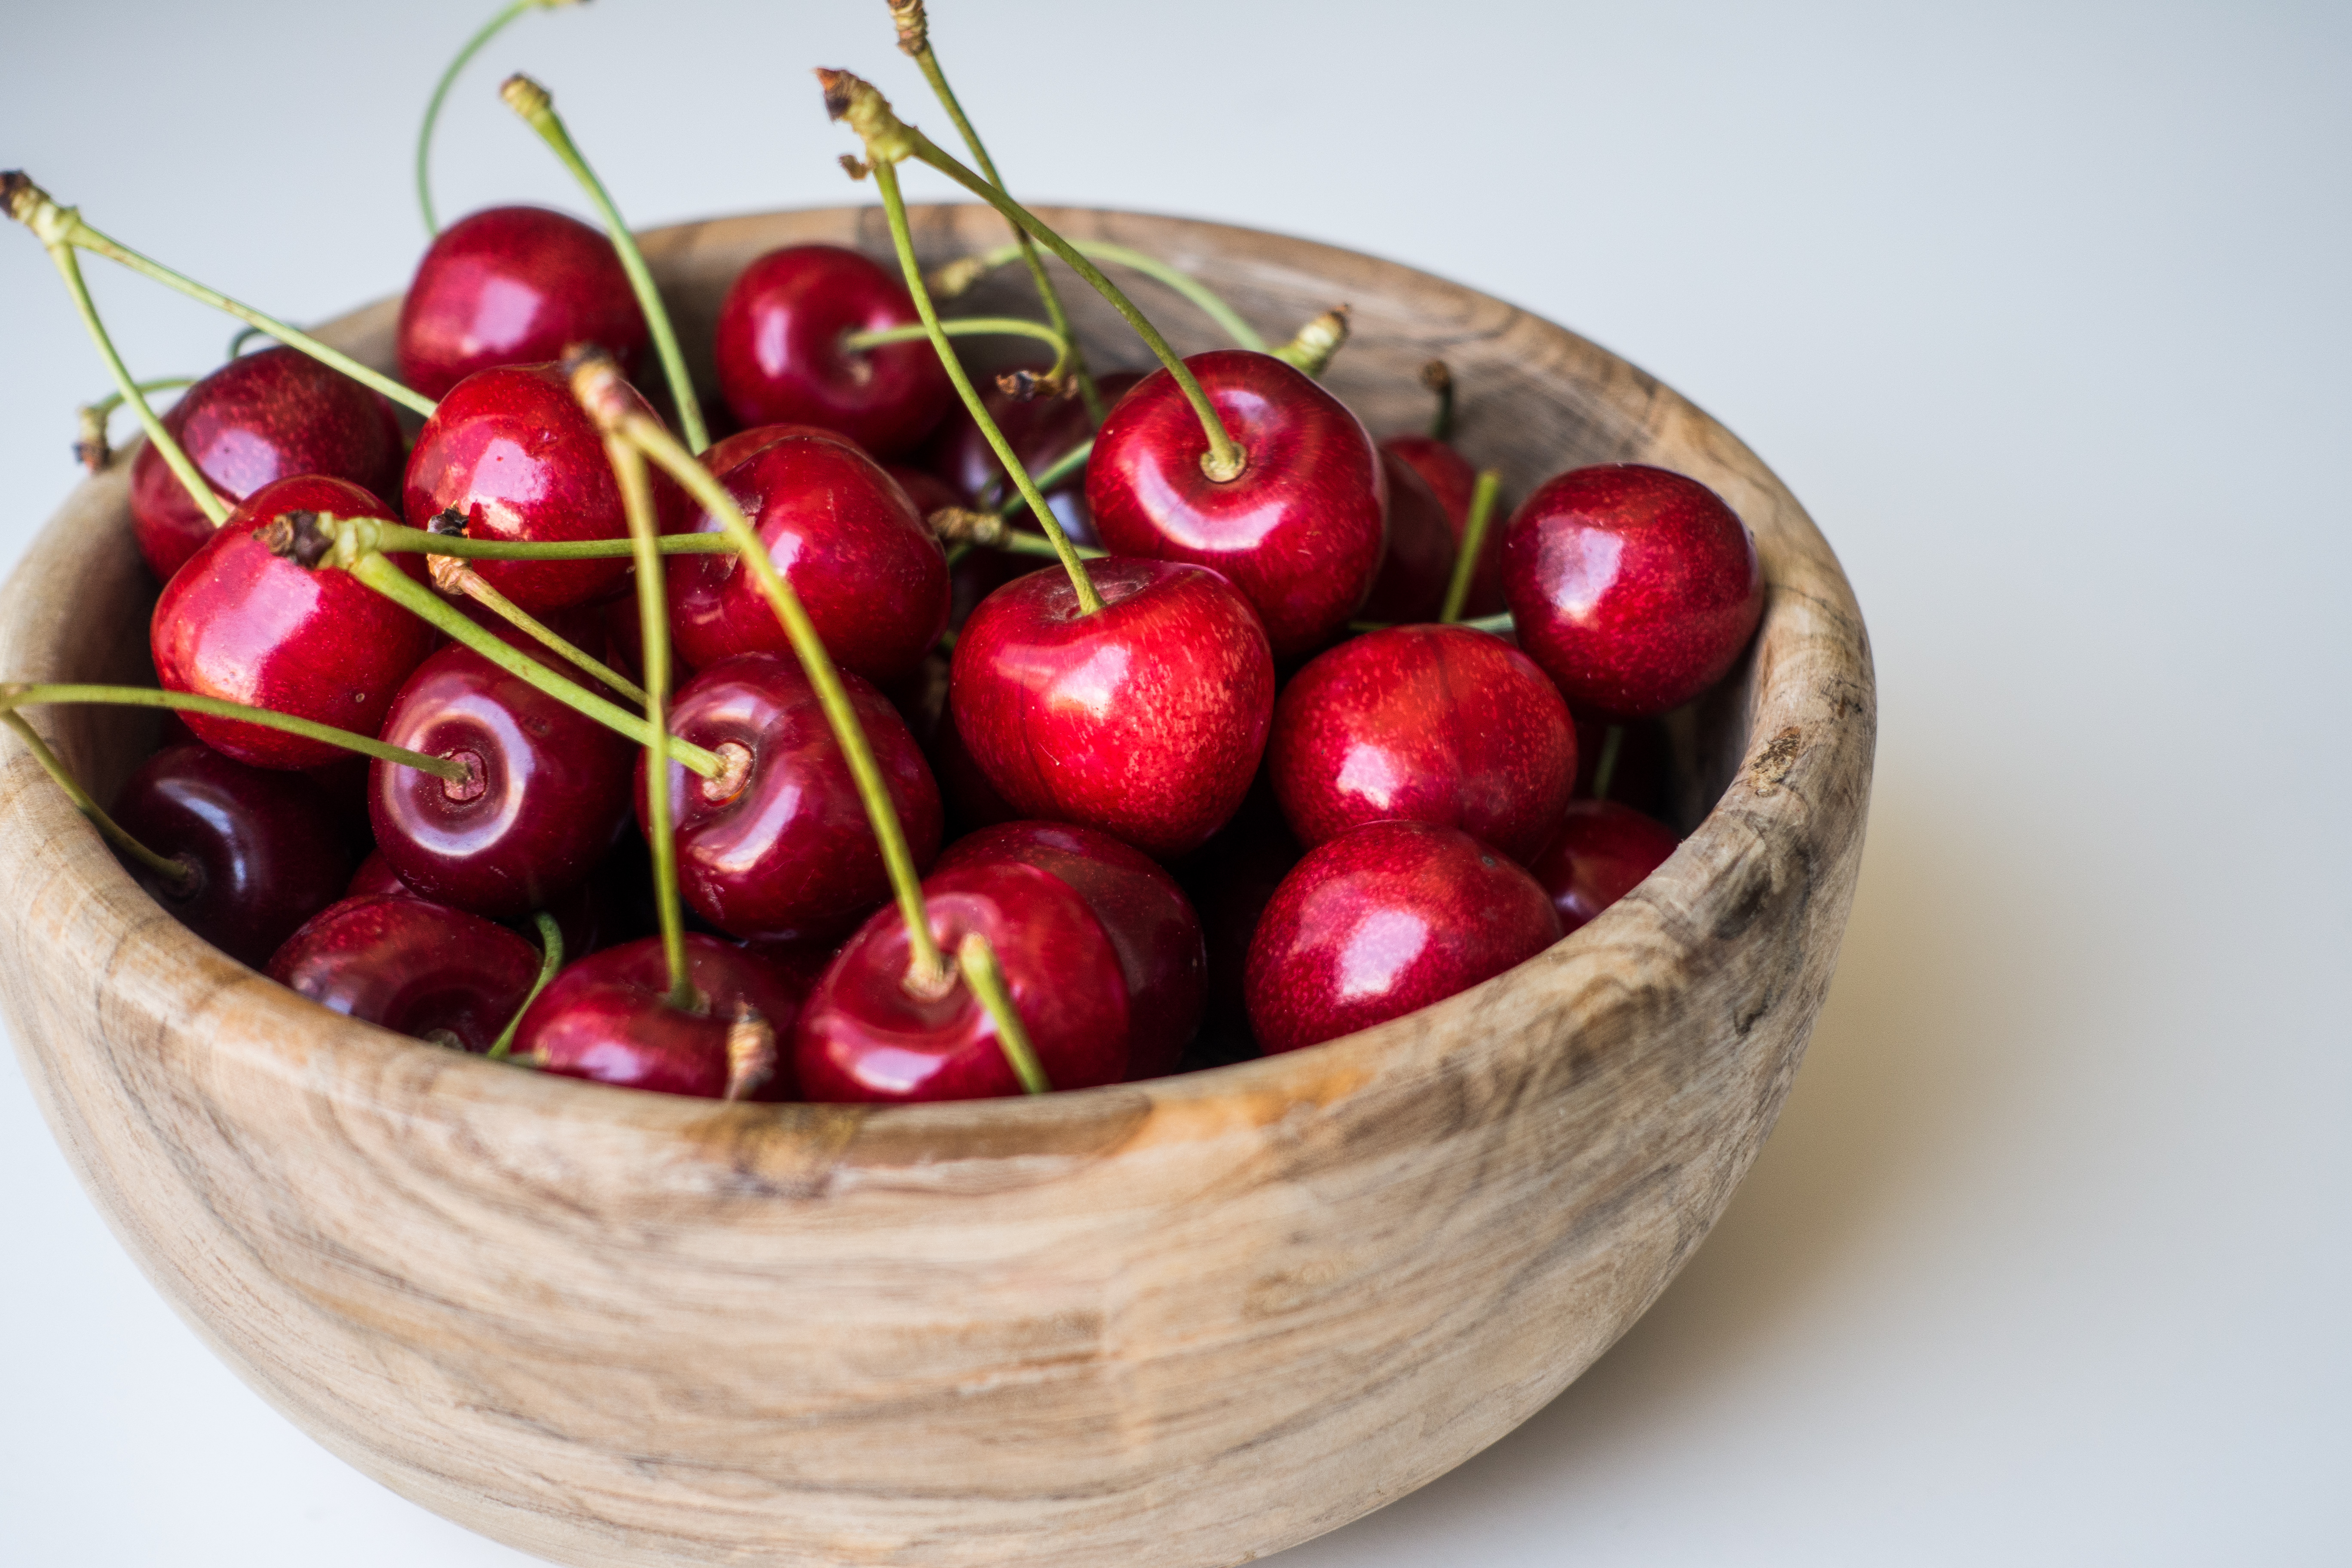 Fresh cherries in a wooden bowl